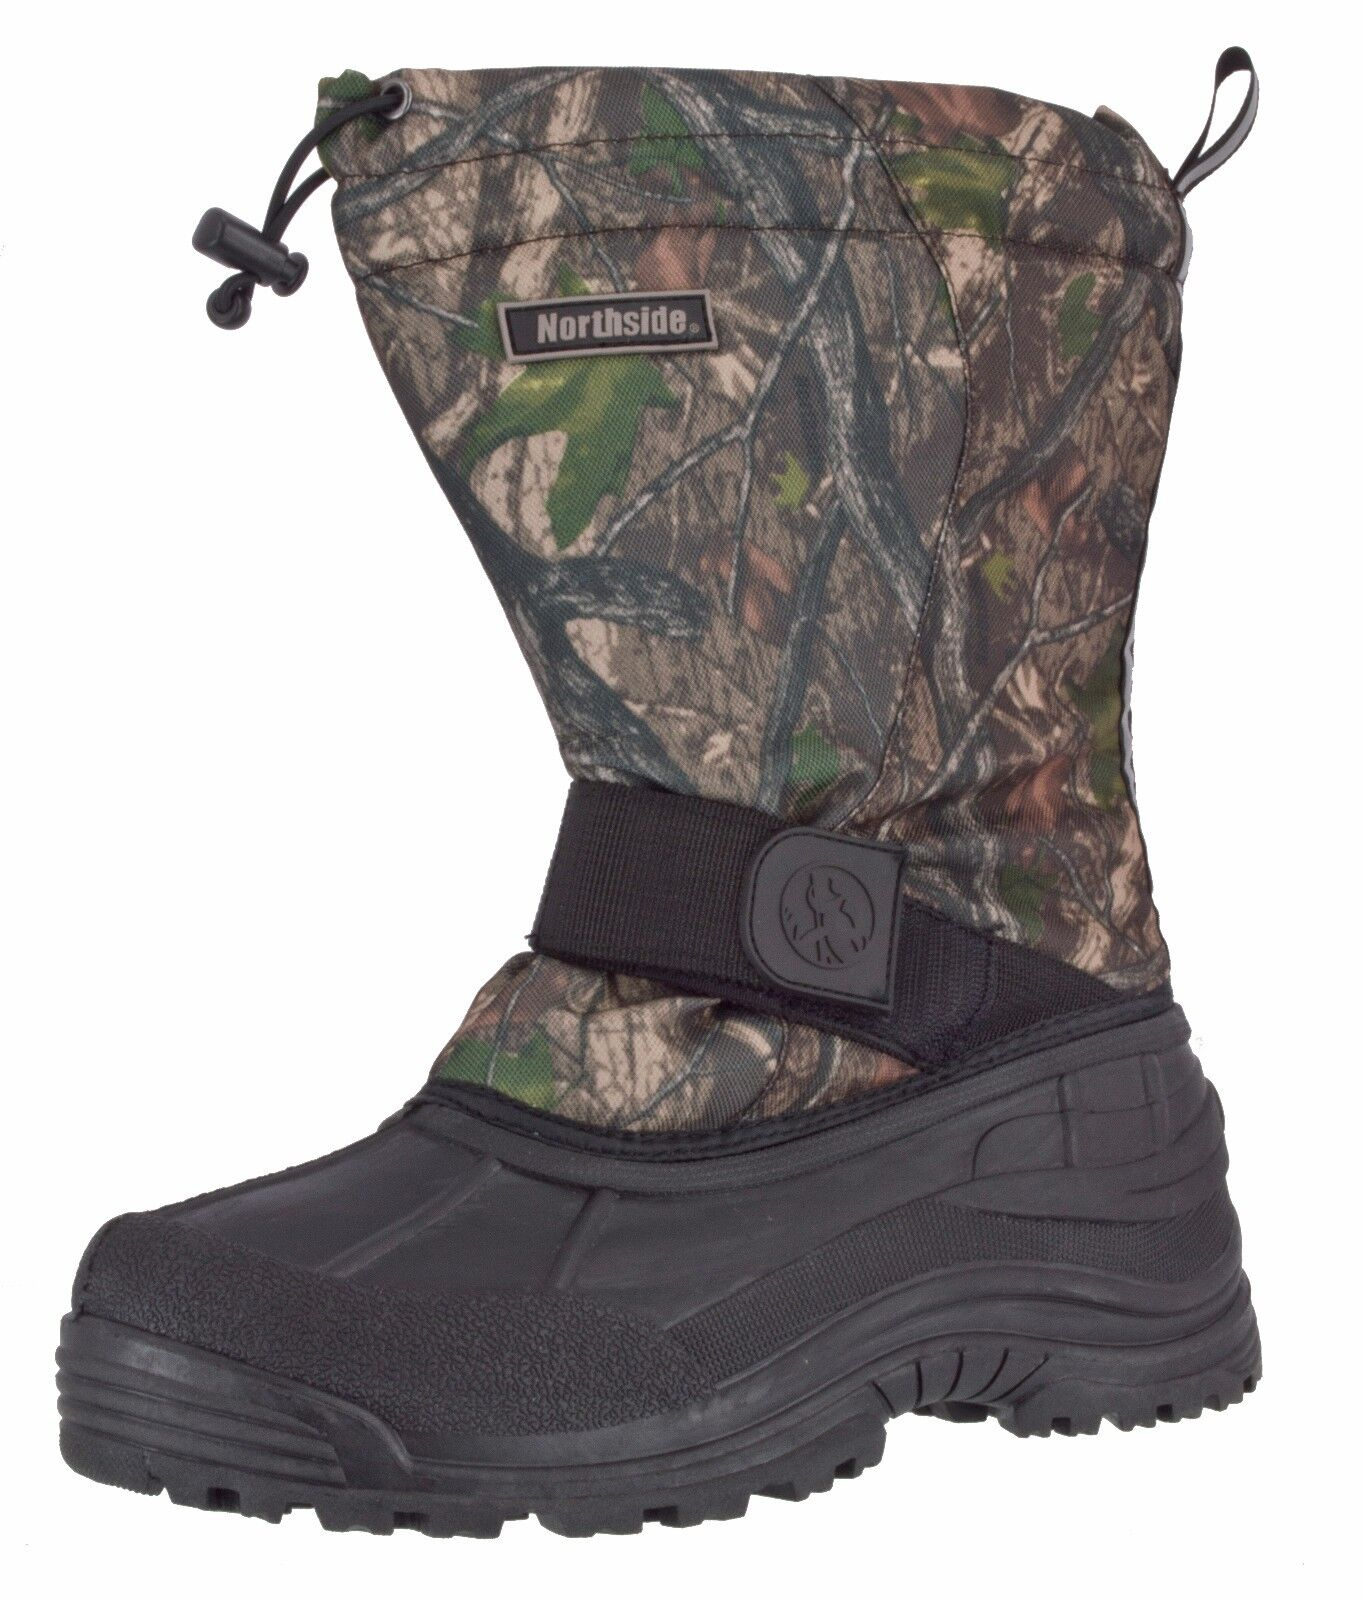 NORTHSIDE MEN'S ALBERTA II WATERPROOF INSULATED HUNTING WINTER CAMO -40 BOOT